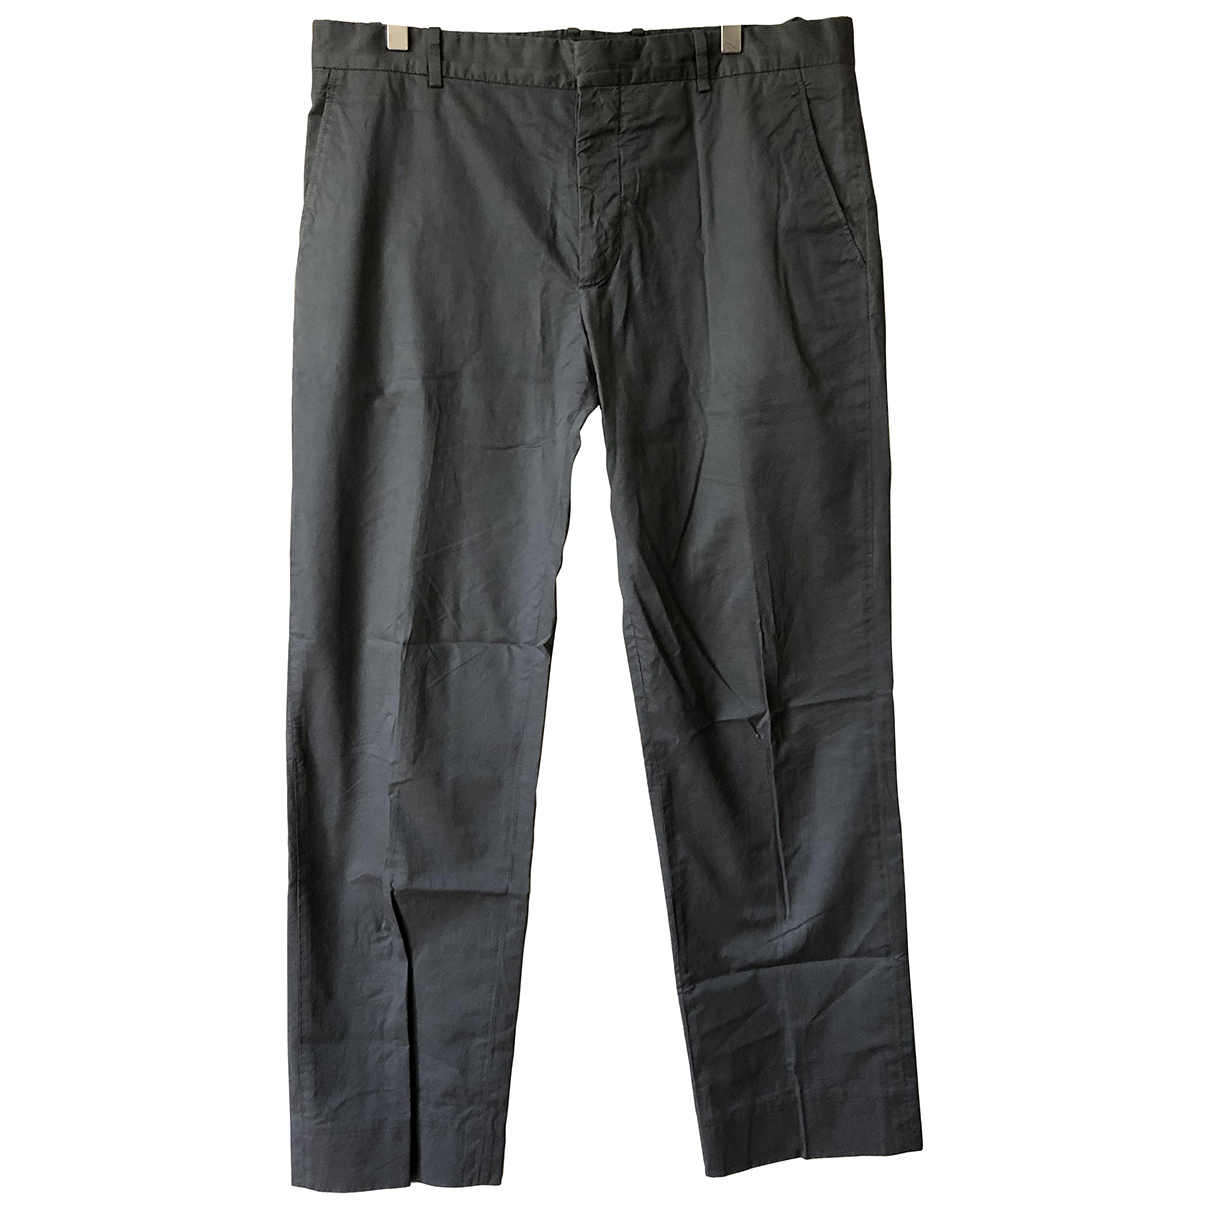 Marni N Anthracite Cotton Trousers for Men 52 IT